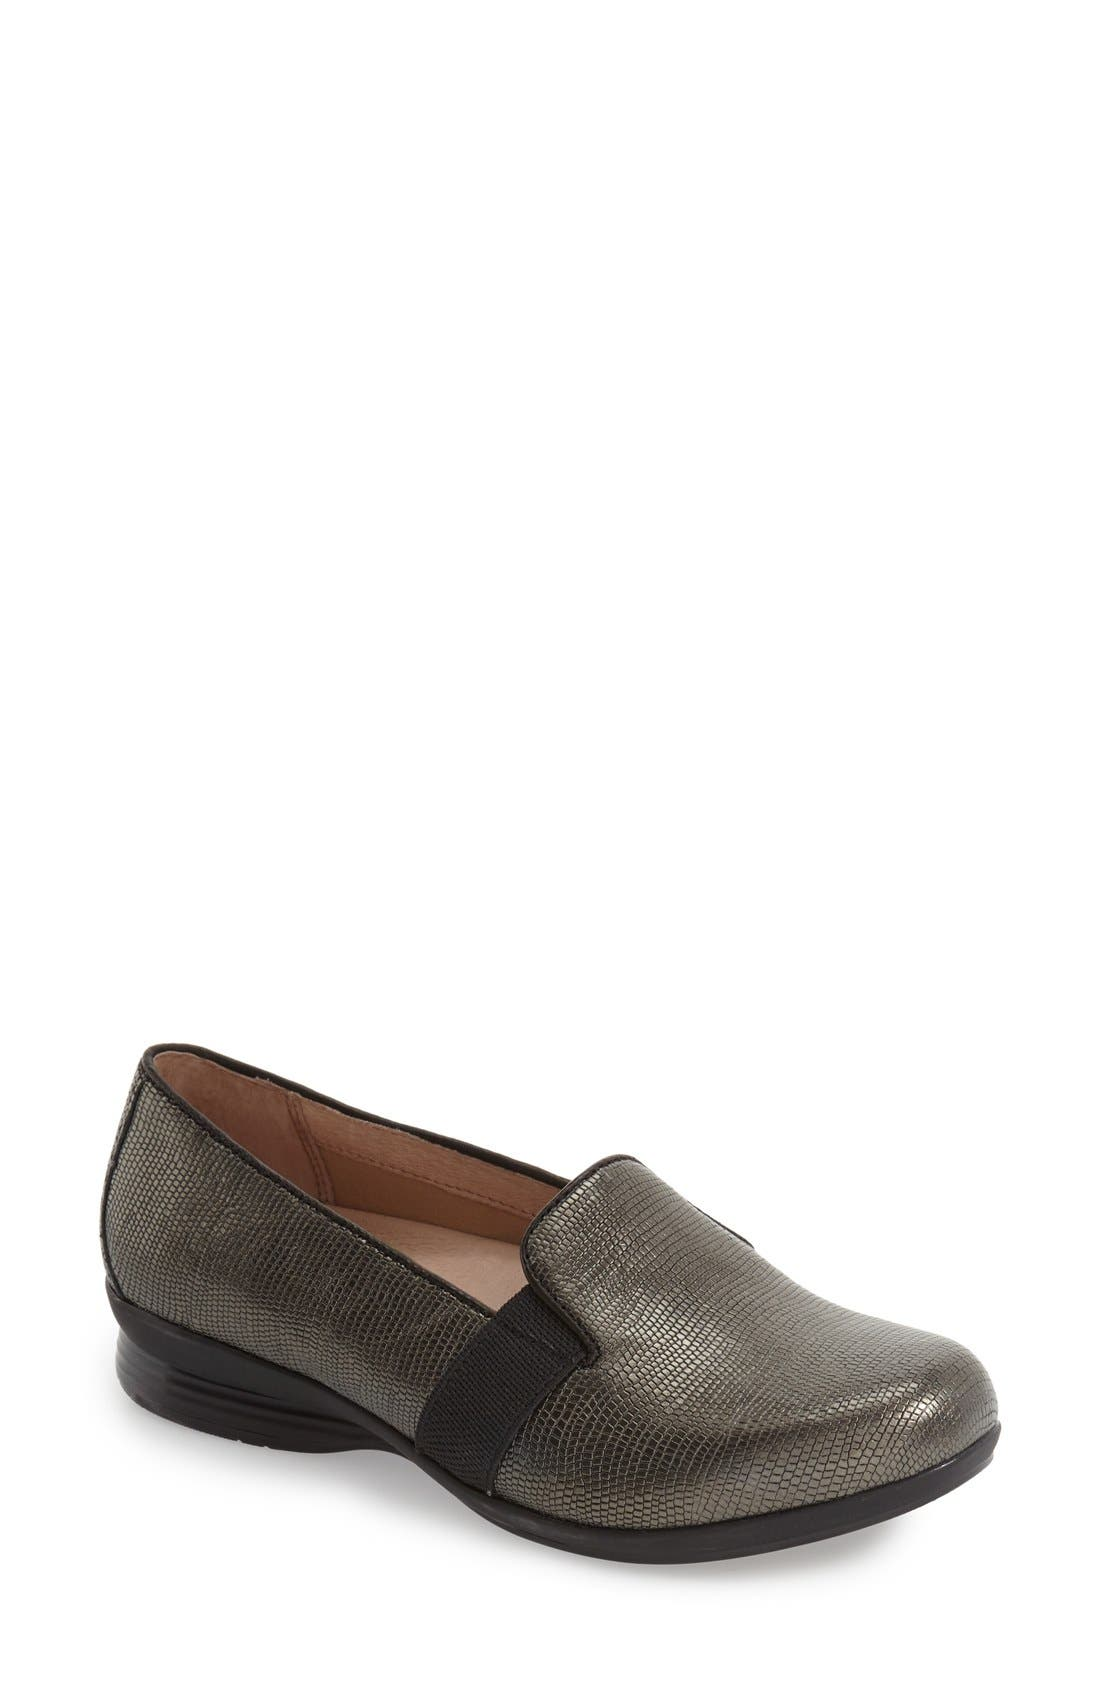 'Addy' Loafer,                             Main thumbnail 1, color,                             040